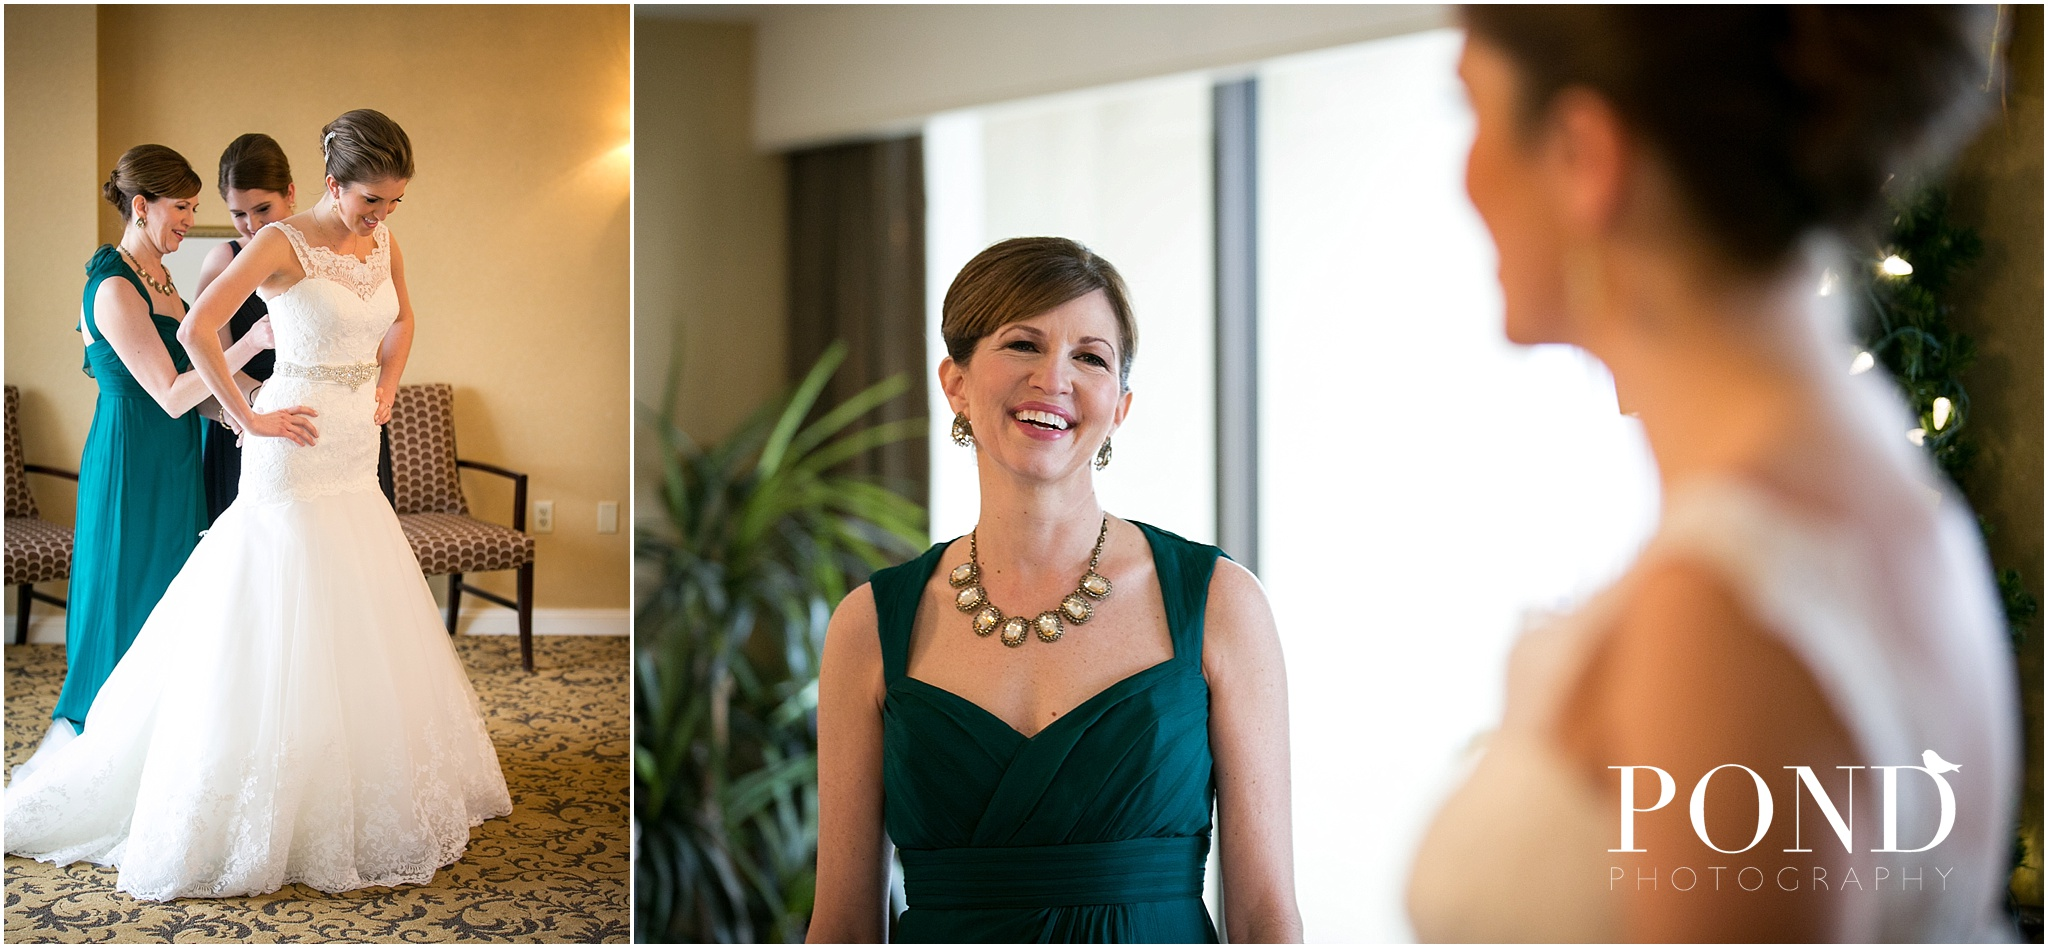 IntercontinentalPlaza_KansasCity_WeddingPhotographer_0009